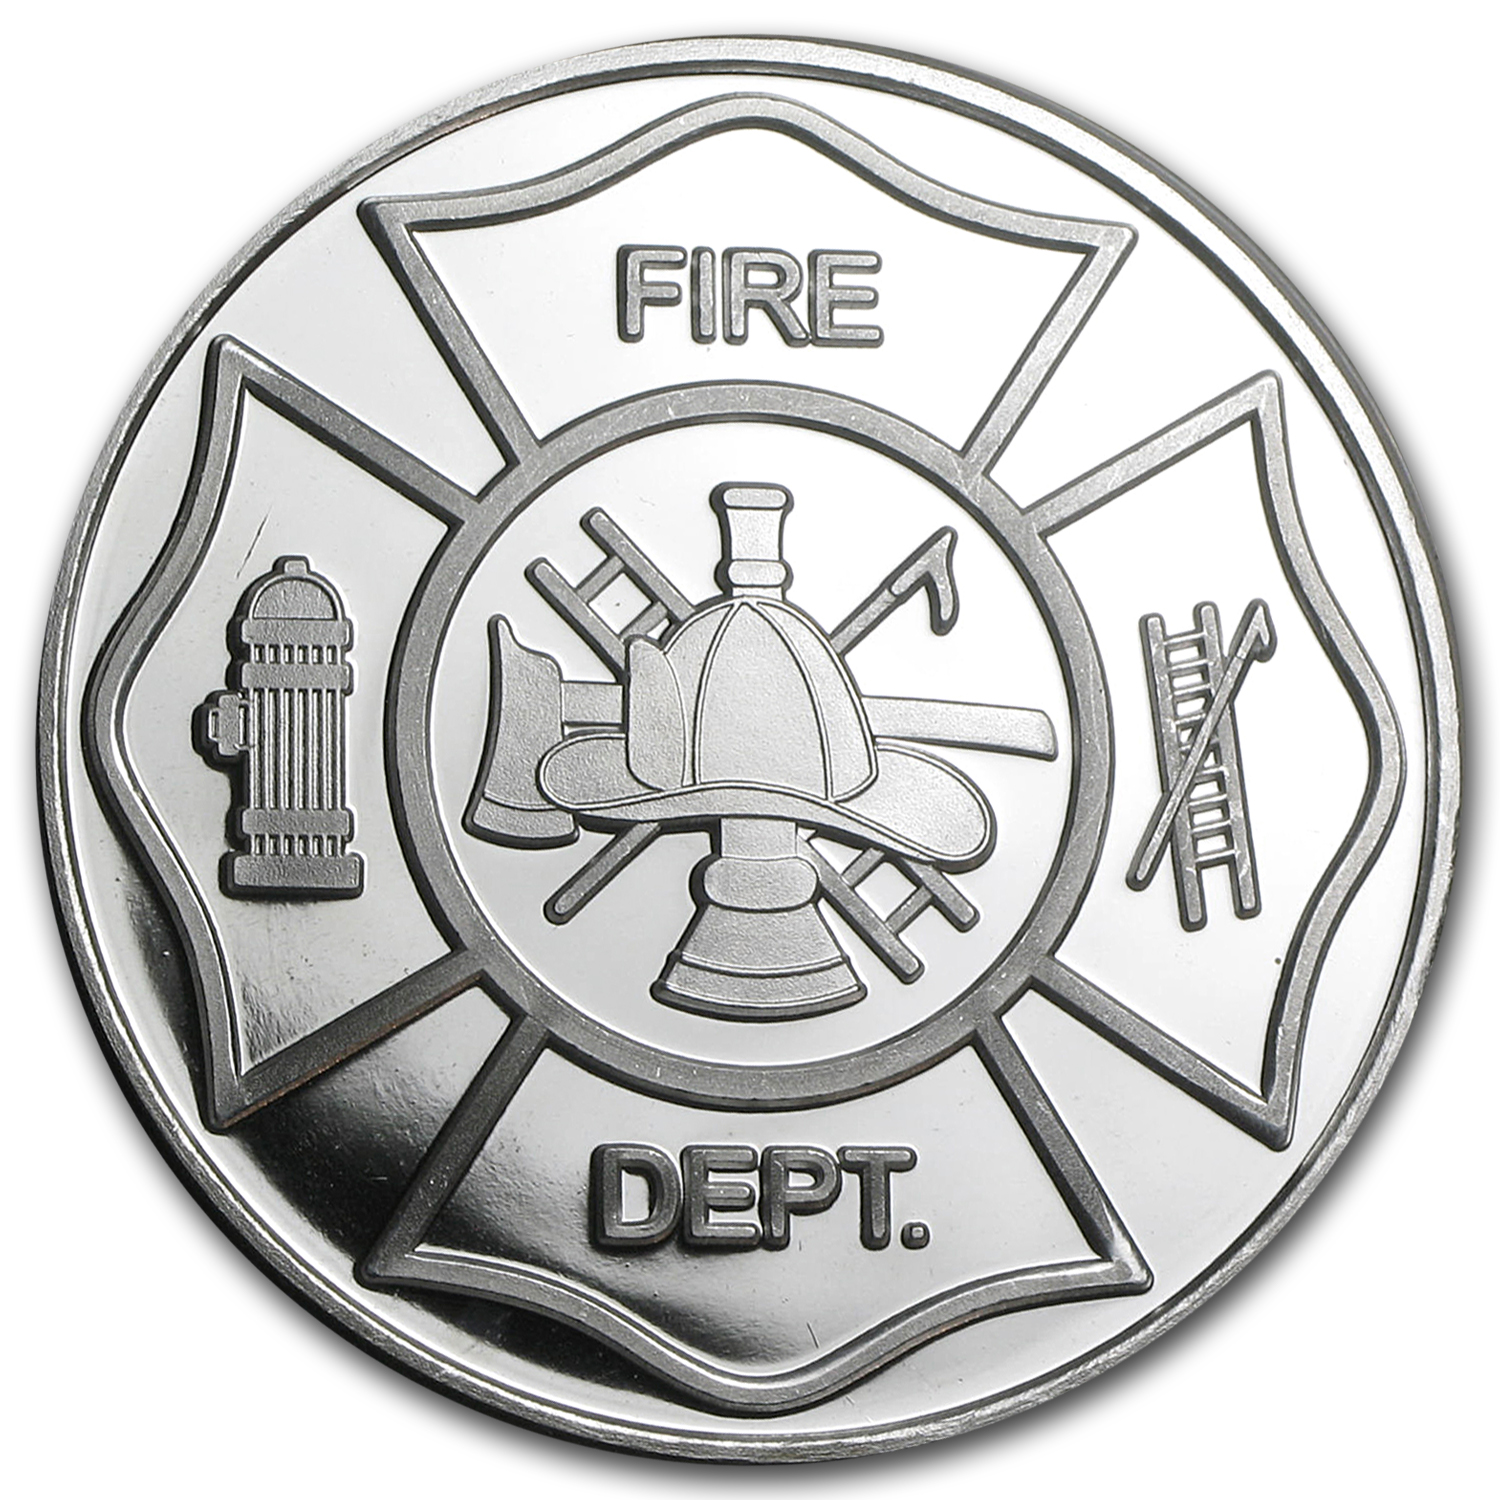 1 oz Silver Round - Fire Department